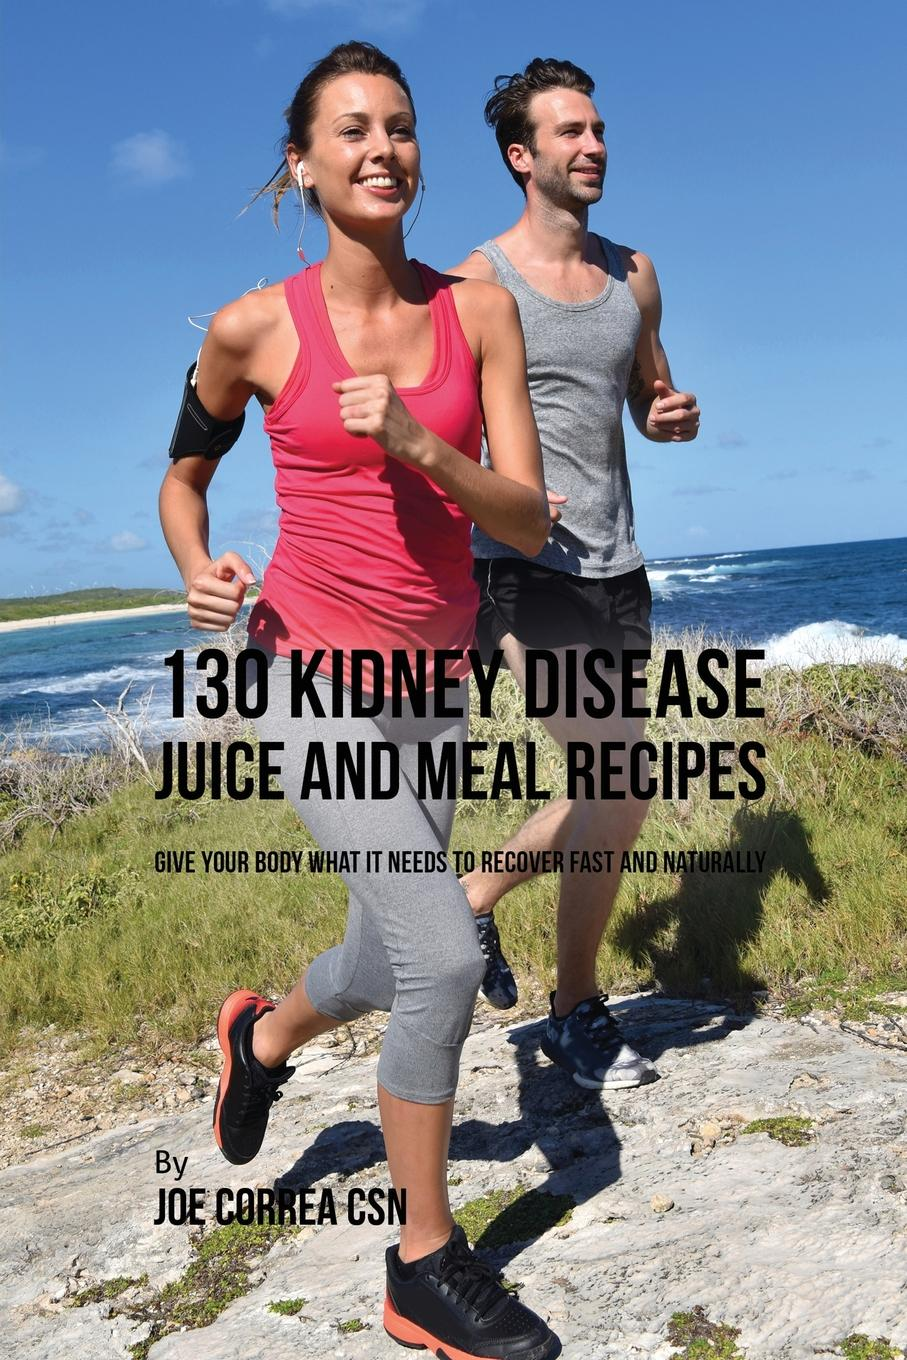 Joe Correa 130 Kidney Disease Juice and Meal Recipes. Give Your Body What It Needs to Recover Fast and Naturally anatomical model of kidney human kidney anatomy model